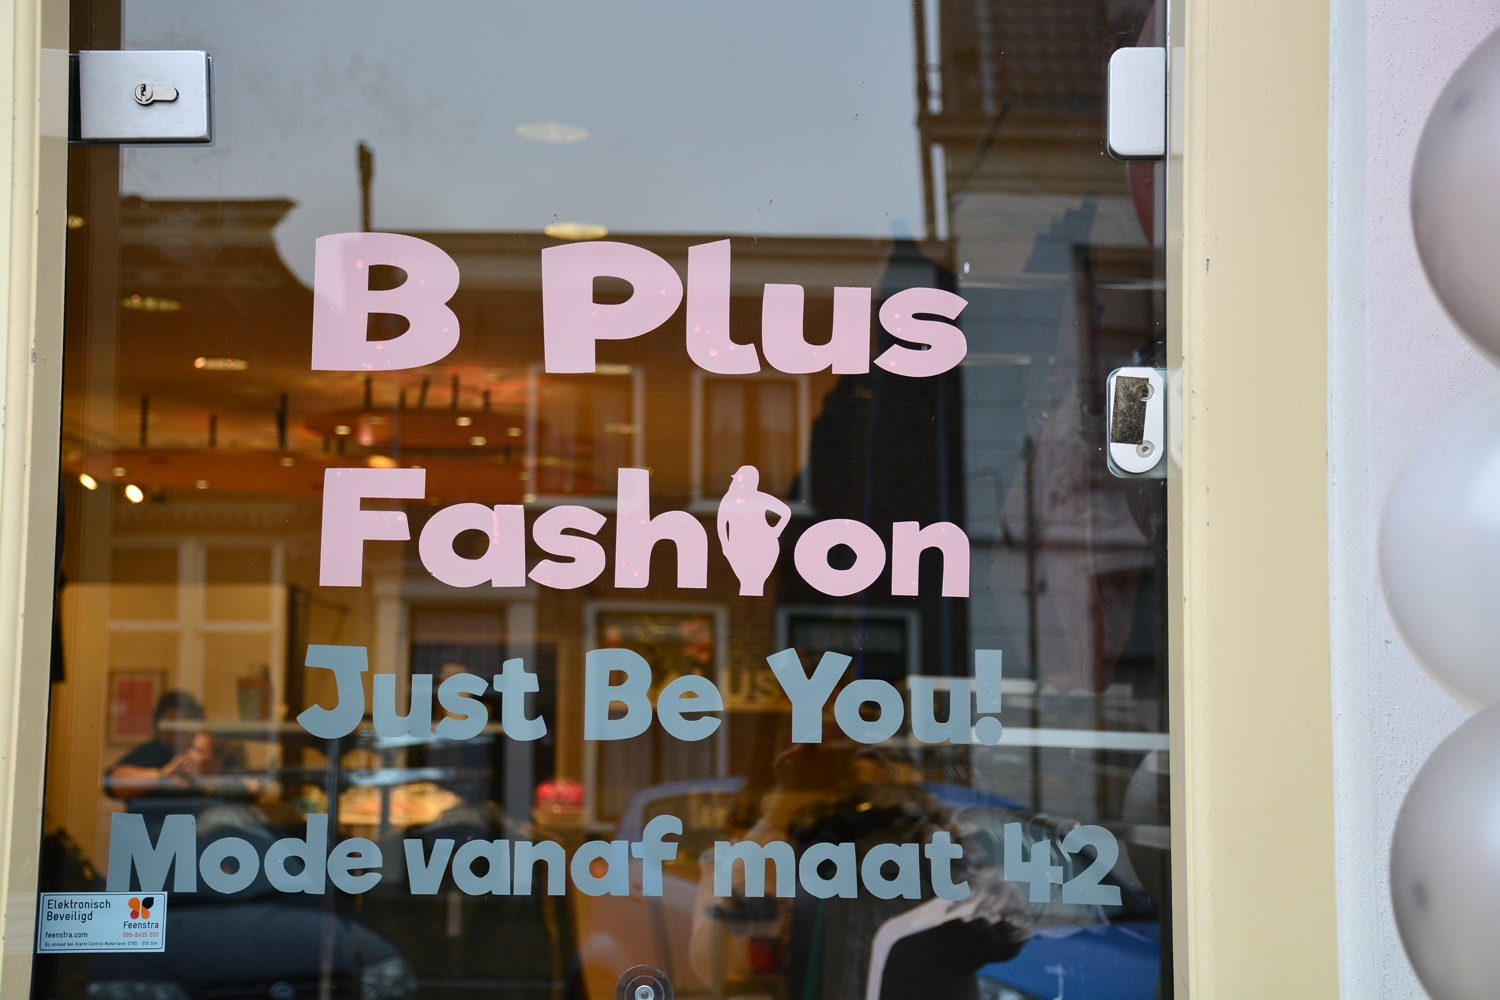 B Plus Fashion